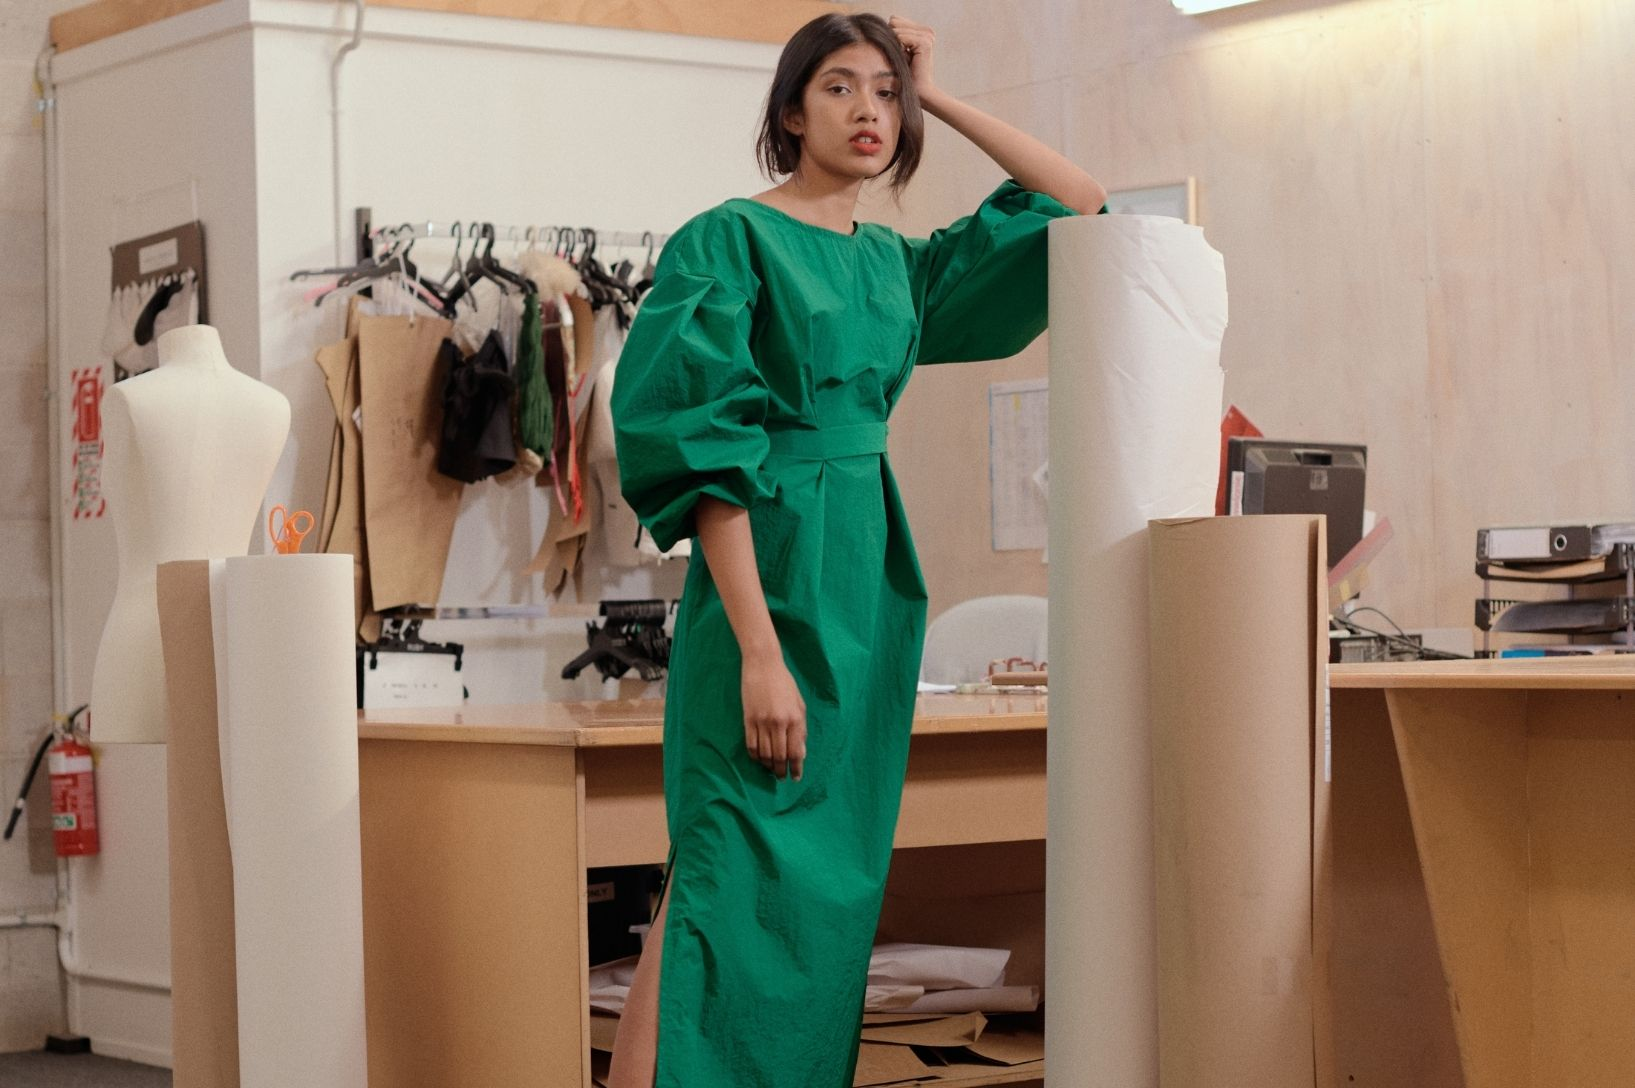 Are patterns the future of fashion? Liam the label wants you to do it yourself